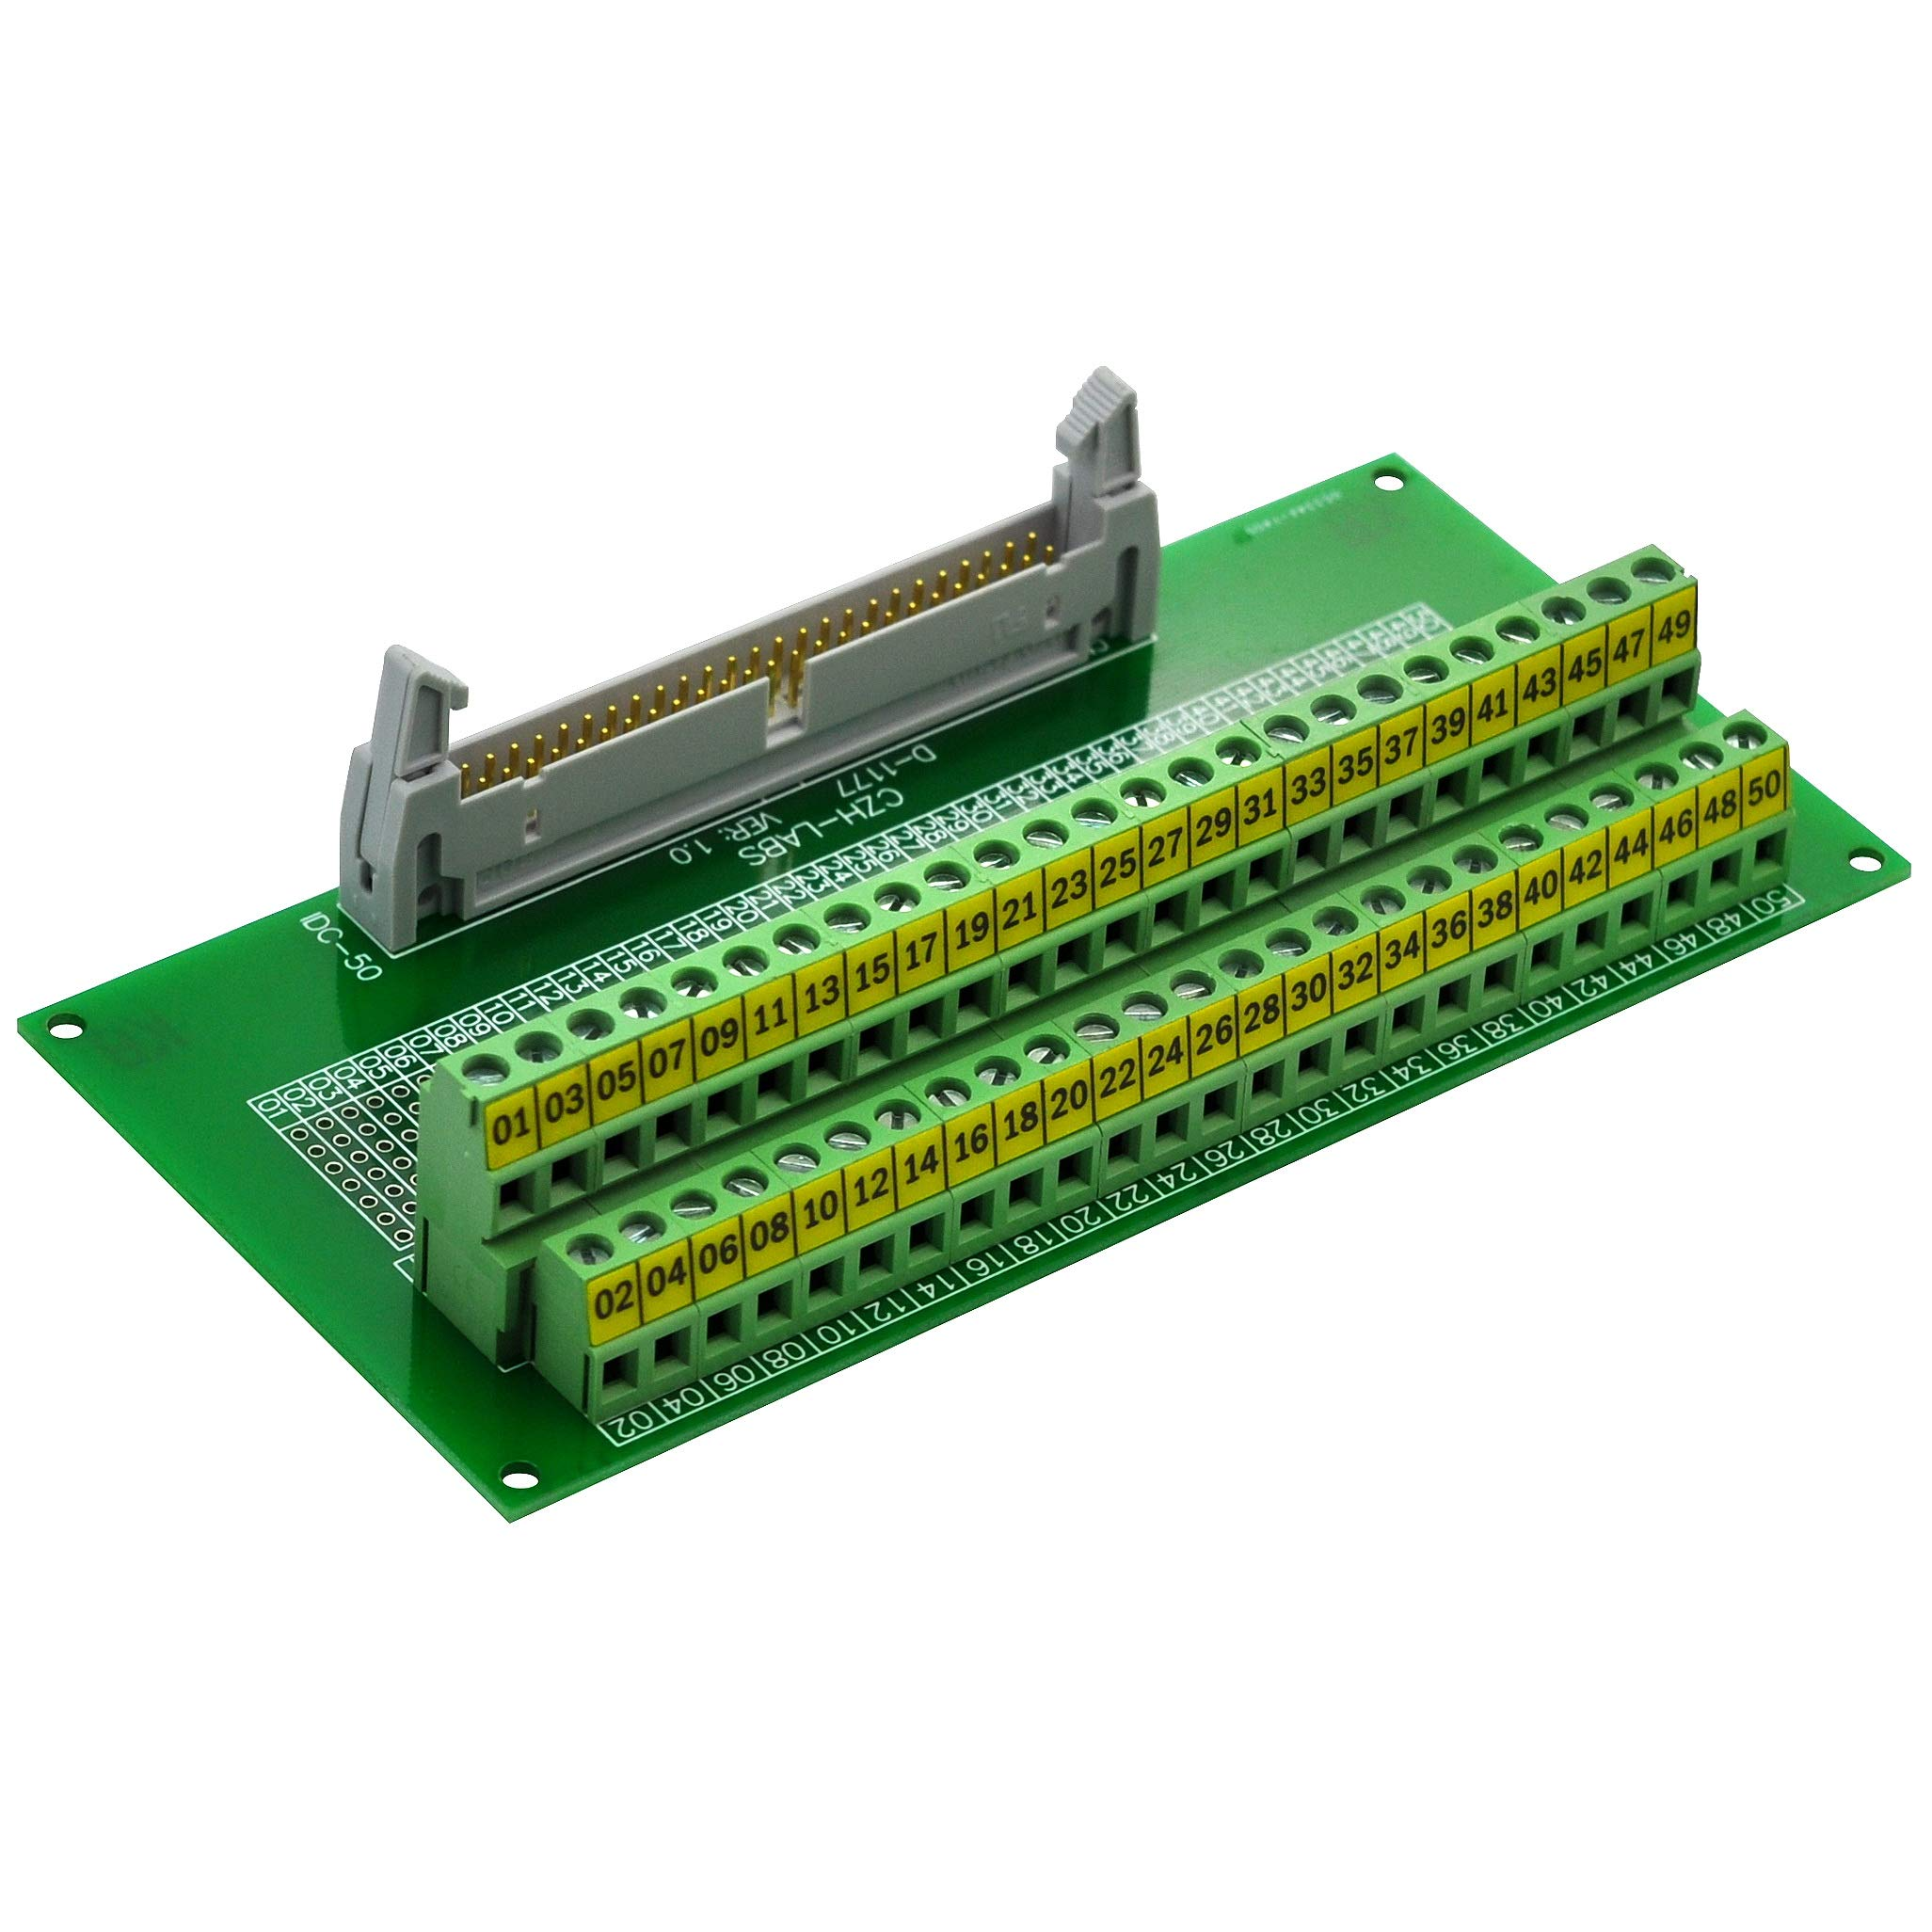 CZH-LABS IDC-50 Male Header Connector Breakout Board Module, IDC Pitch 0.1'', Terminal Block Pitch 0.2''